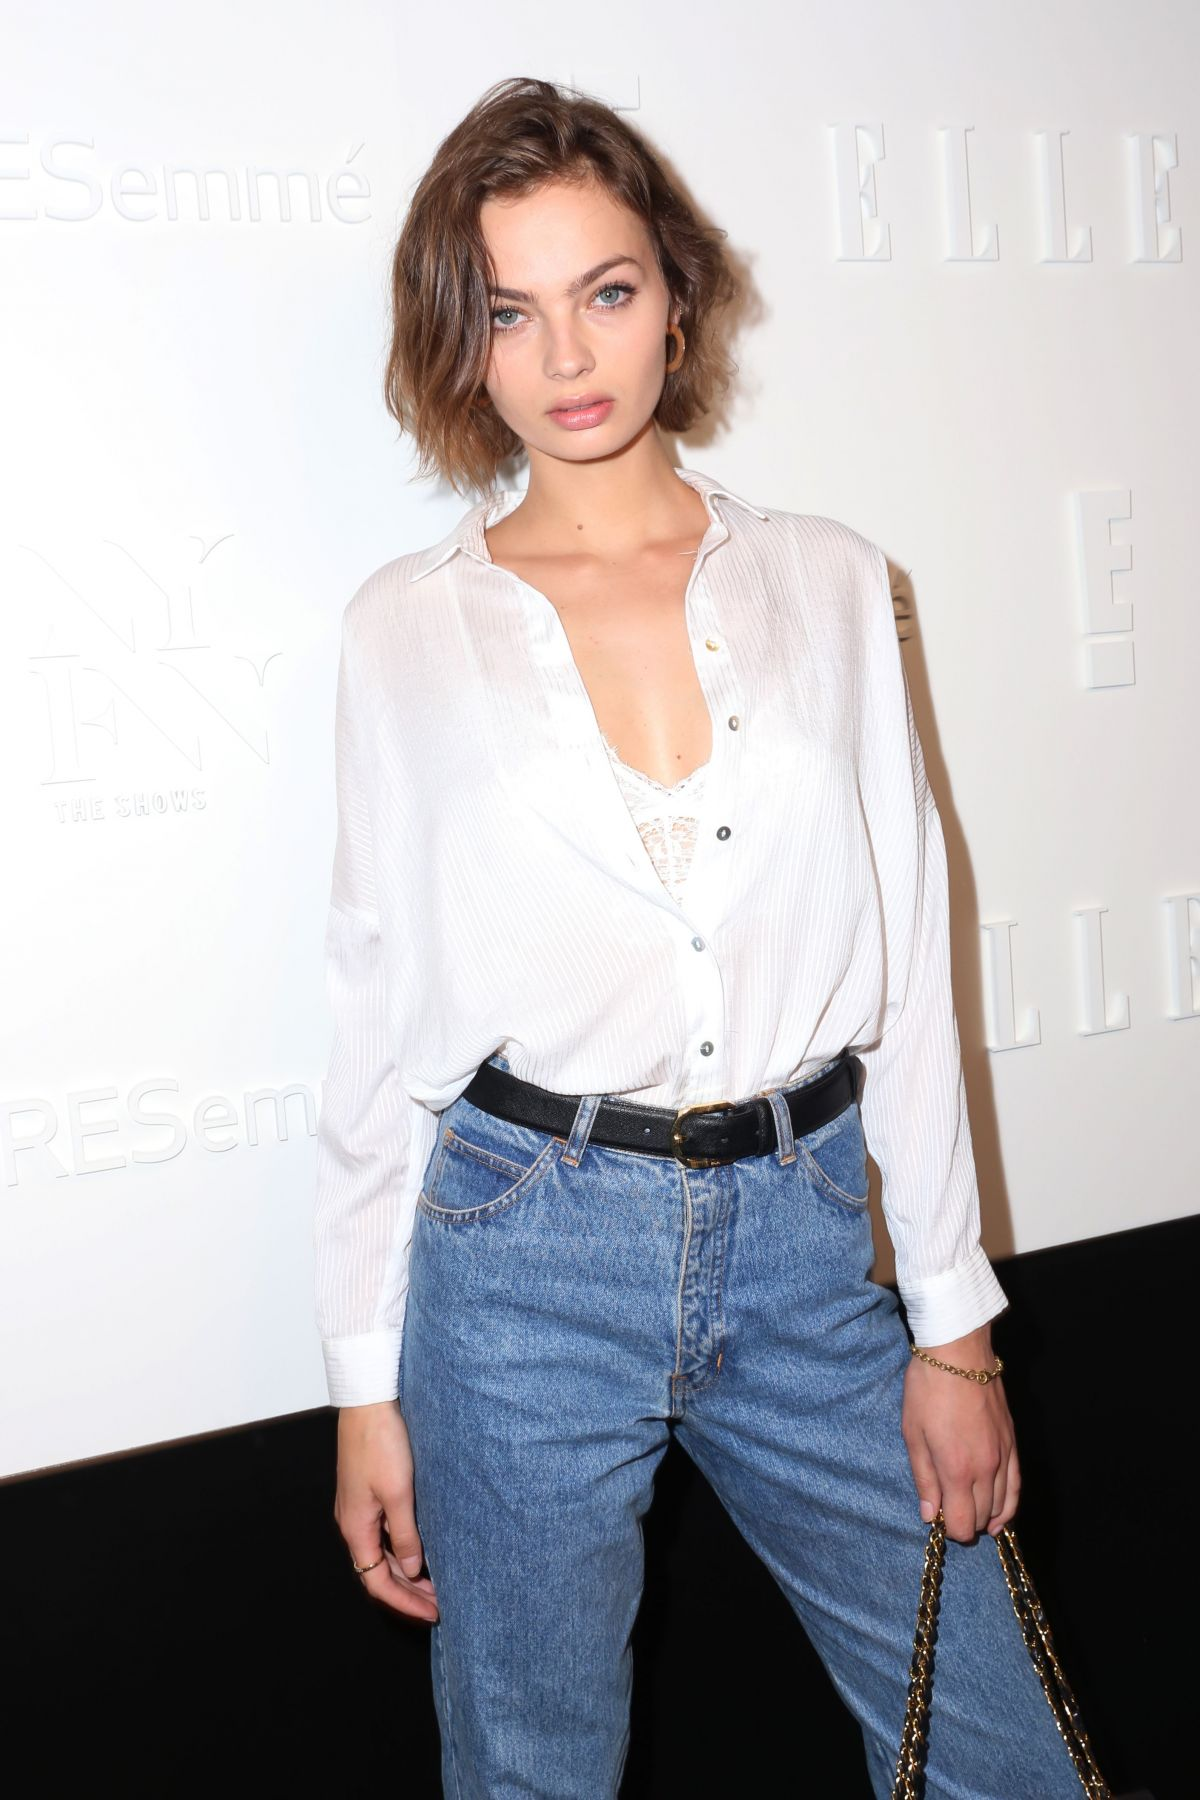 MOA ABERG at E!, Elle & Img Host New York Fashion Week Kickoff Party 09/06/2017